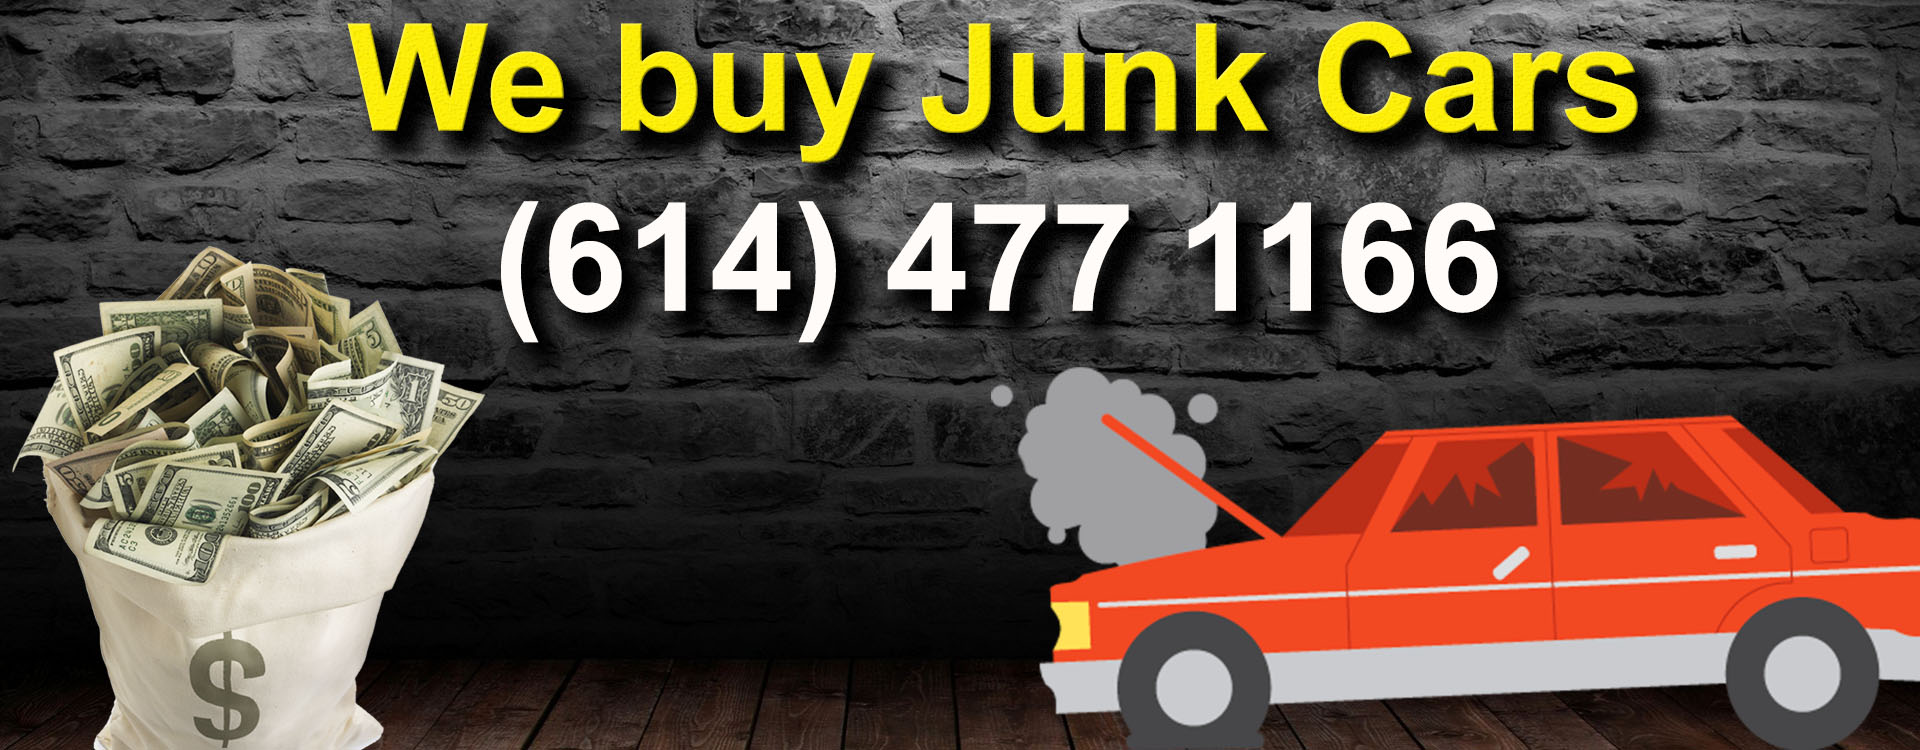 Find junk car buyer in Columbus Ohio Area. Sell scrap cars for cash